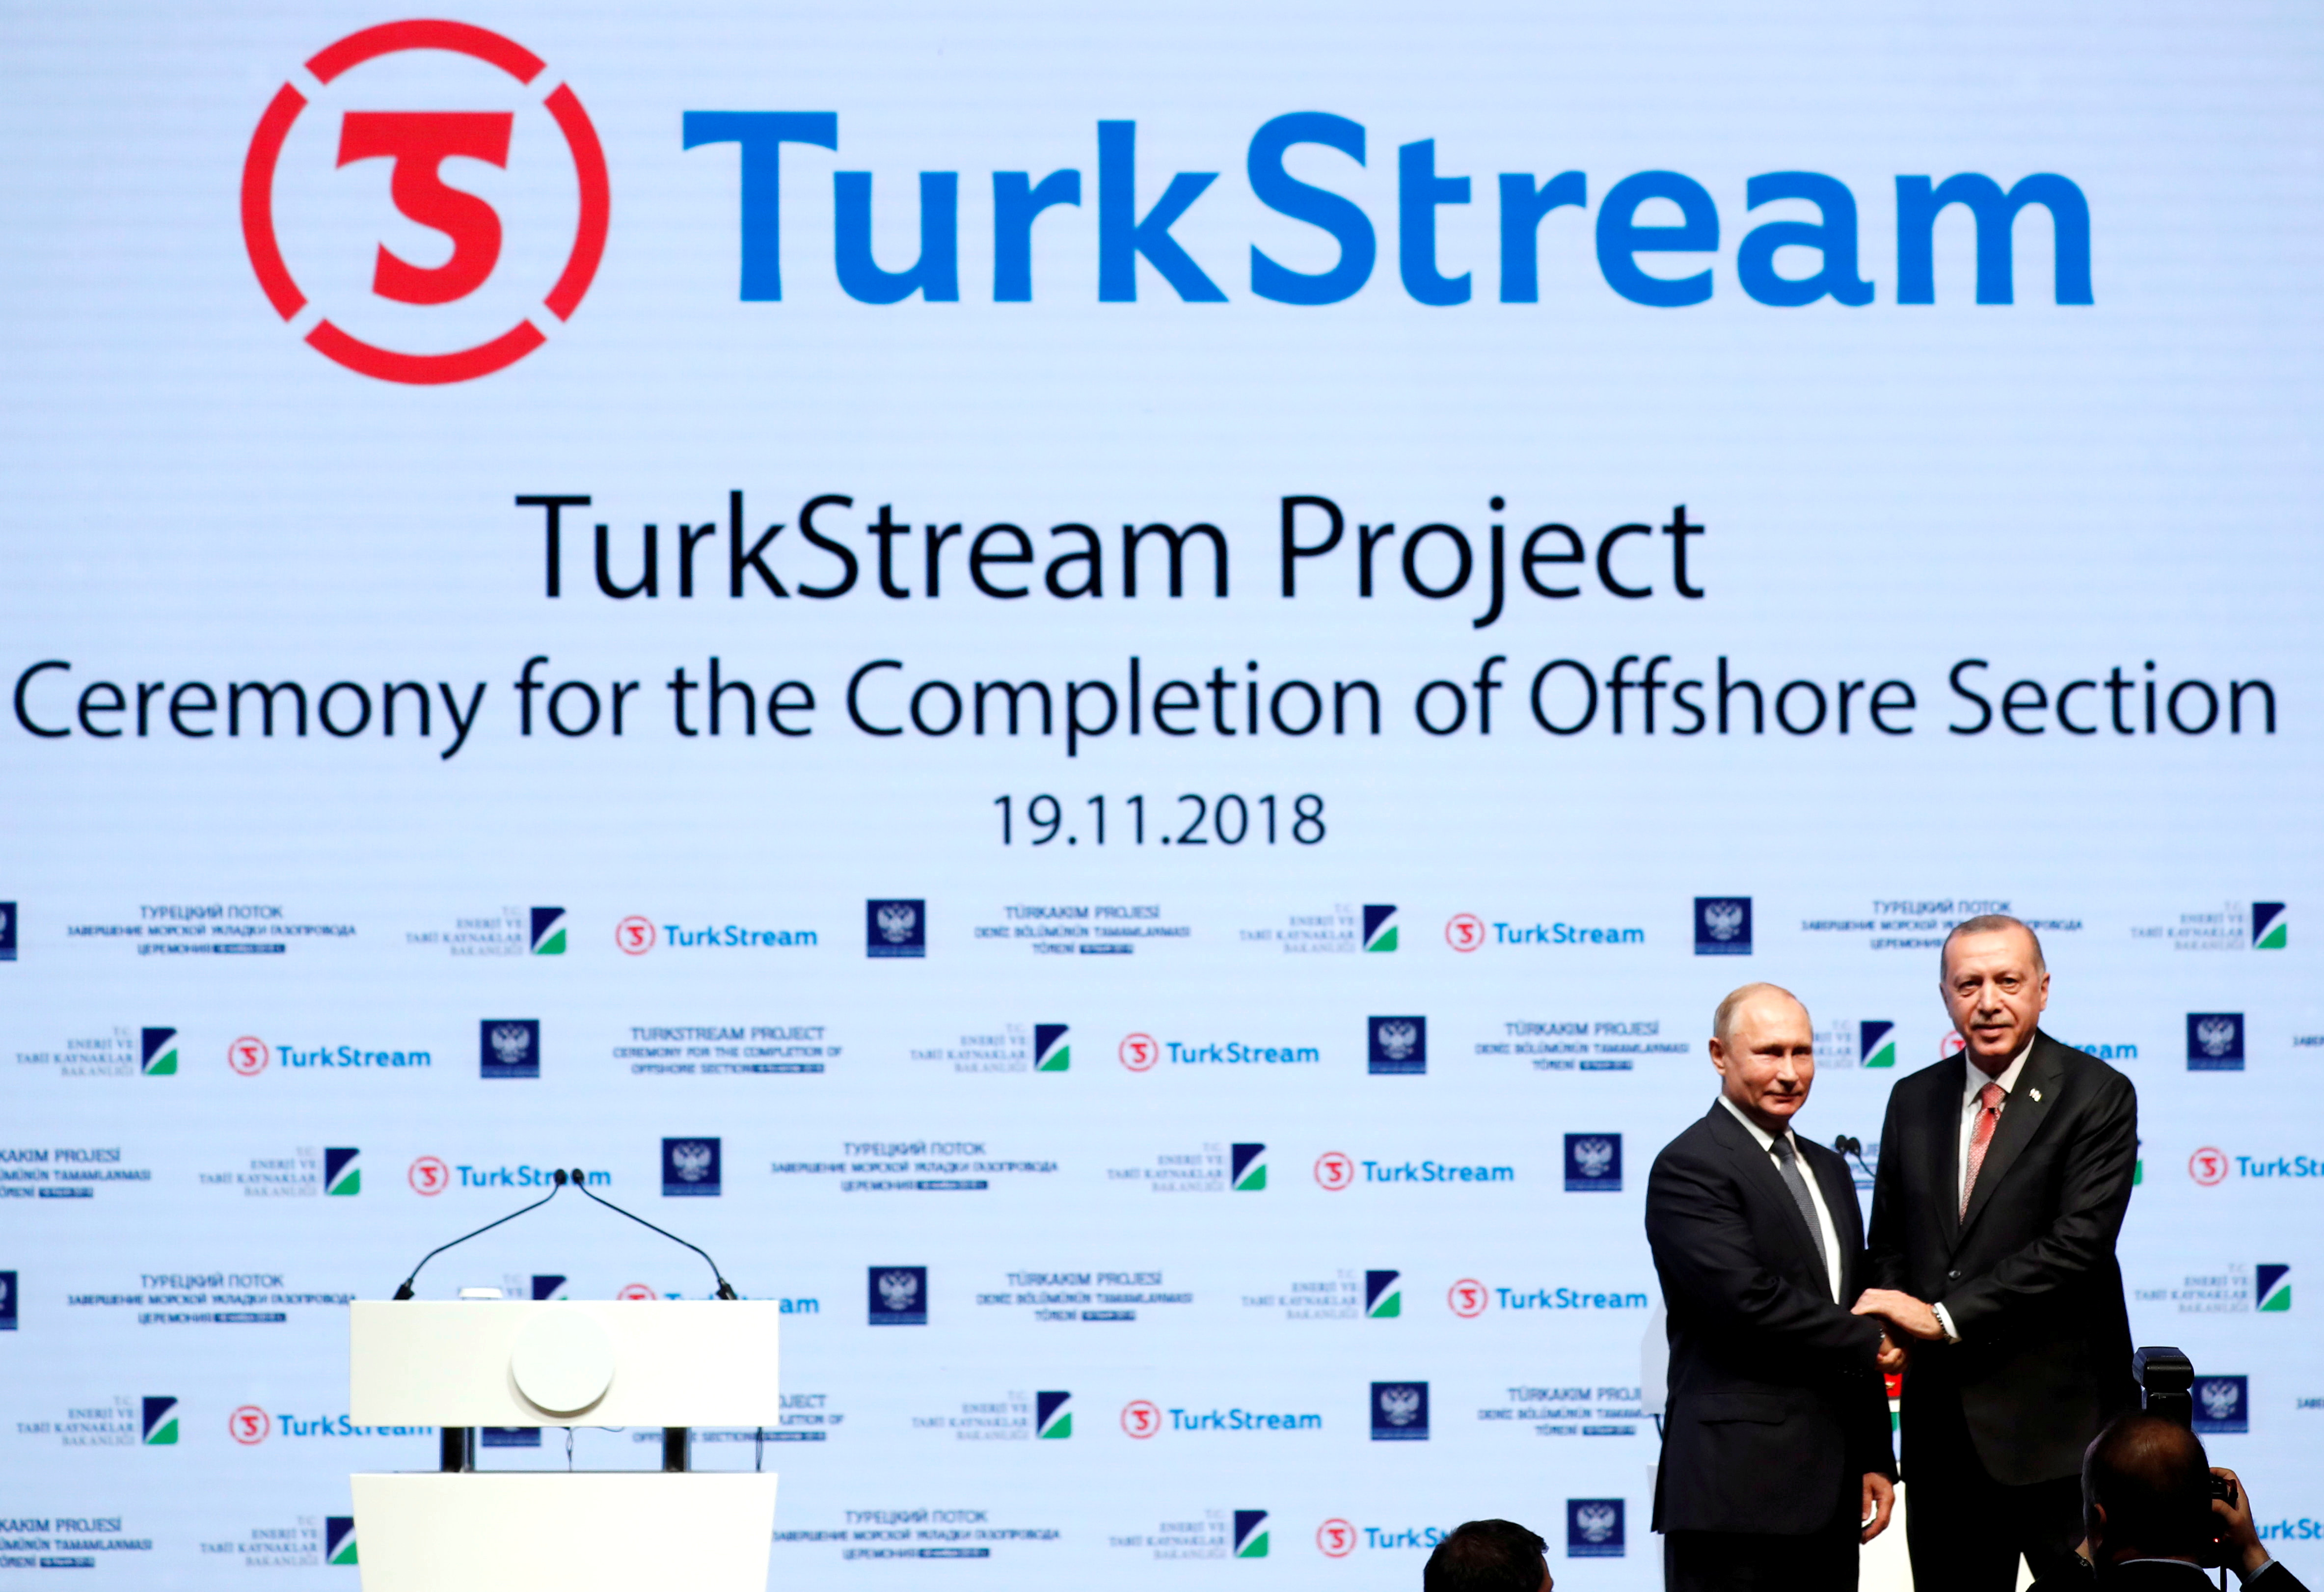 Turkish President Tayyip Erdogan and his Russian counterpart Vladimir Putin shake hands as they attend a ceremony to mark the completion of the sea part of the TurkStream gas pipeline, in Istanbul, Turkey November 19, 2018. REUTERS/Murad Sezer/File Photo